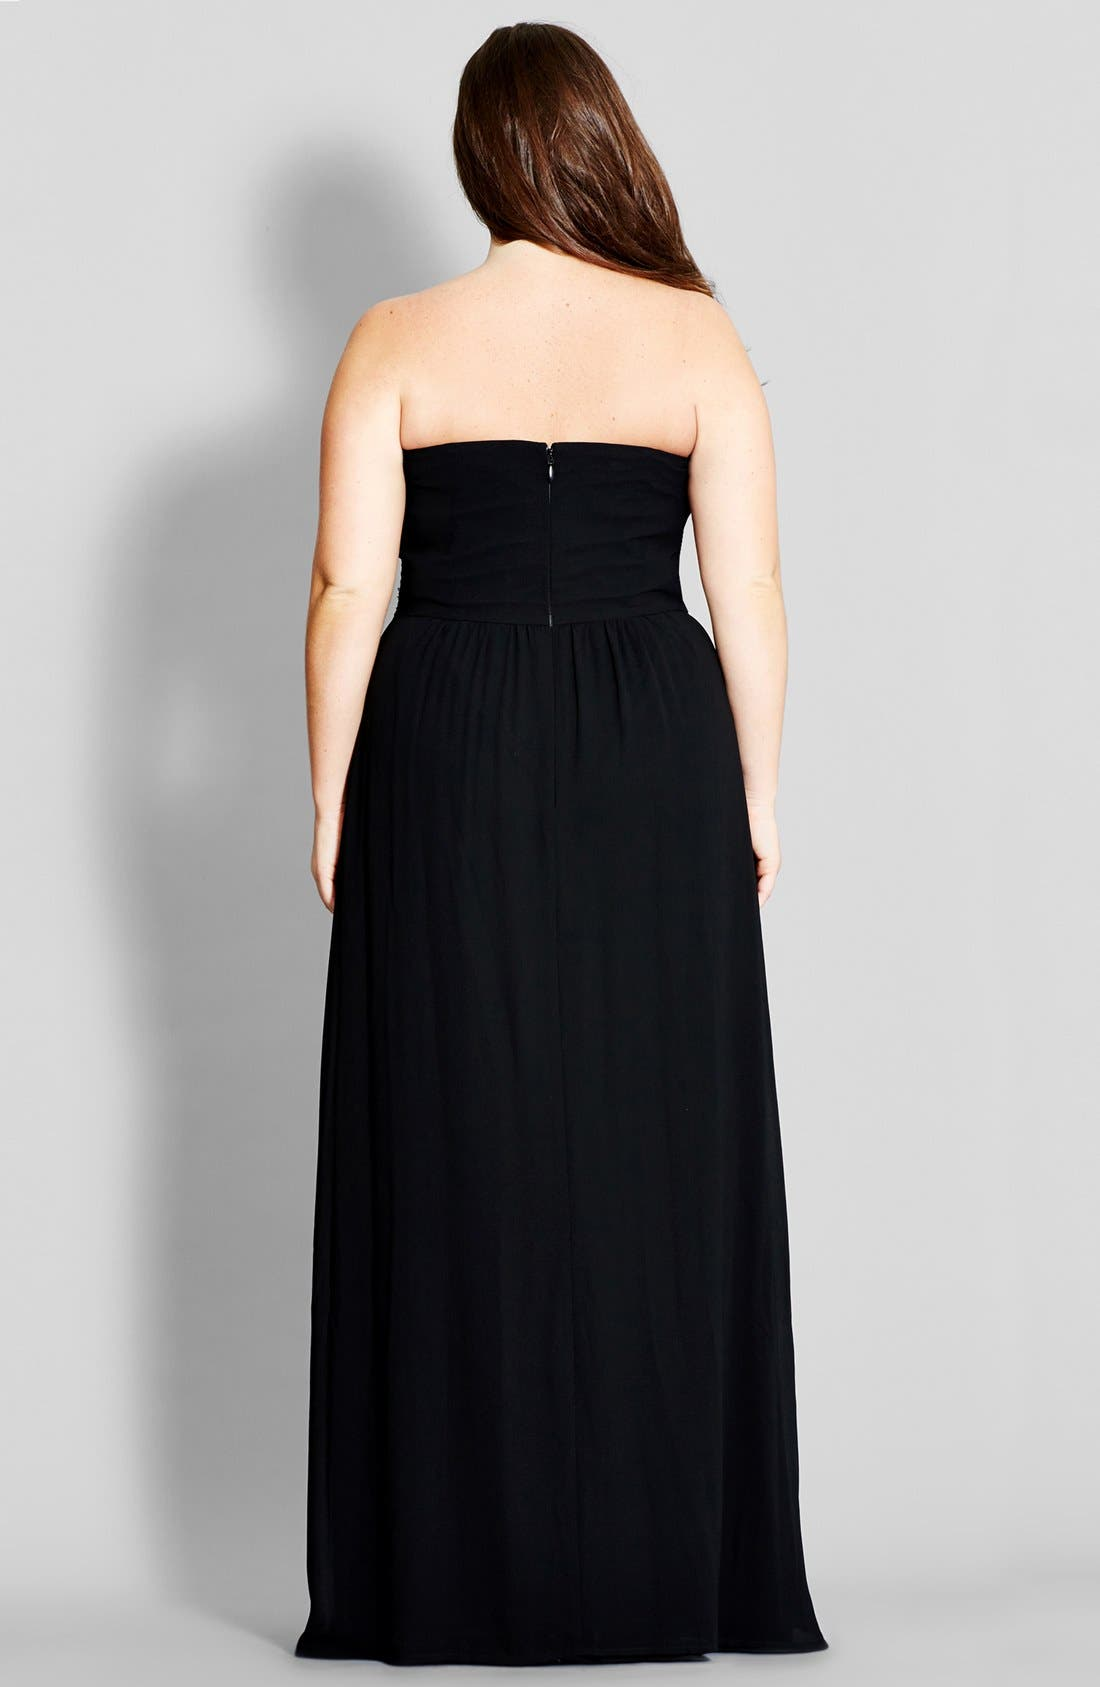 'Contrast Camilla' Embellished Strapless Maxi Dress,                             Alternate thumbnail 2, color,                             001